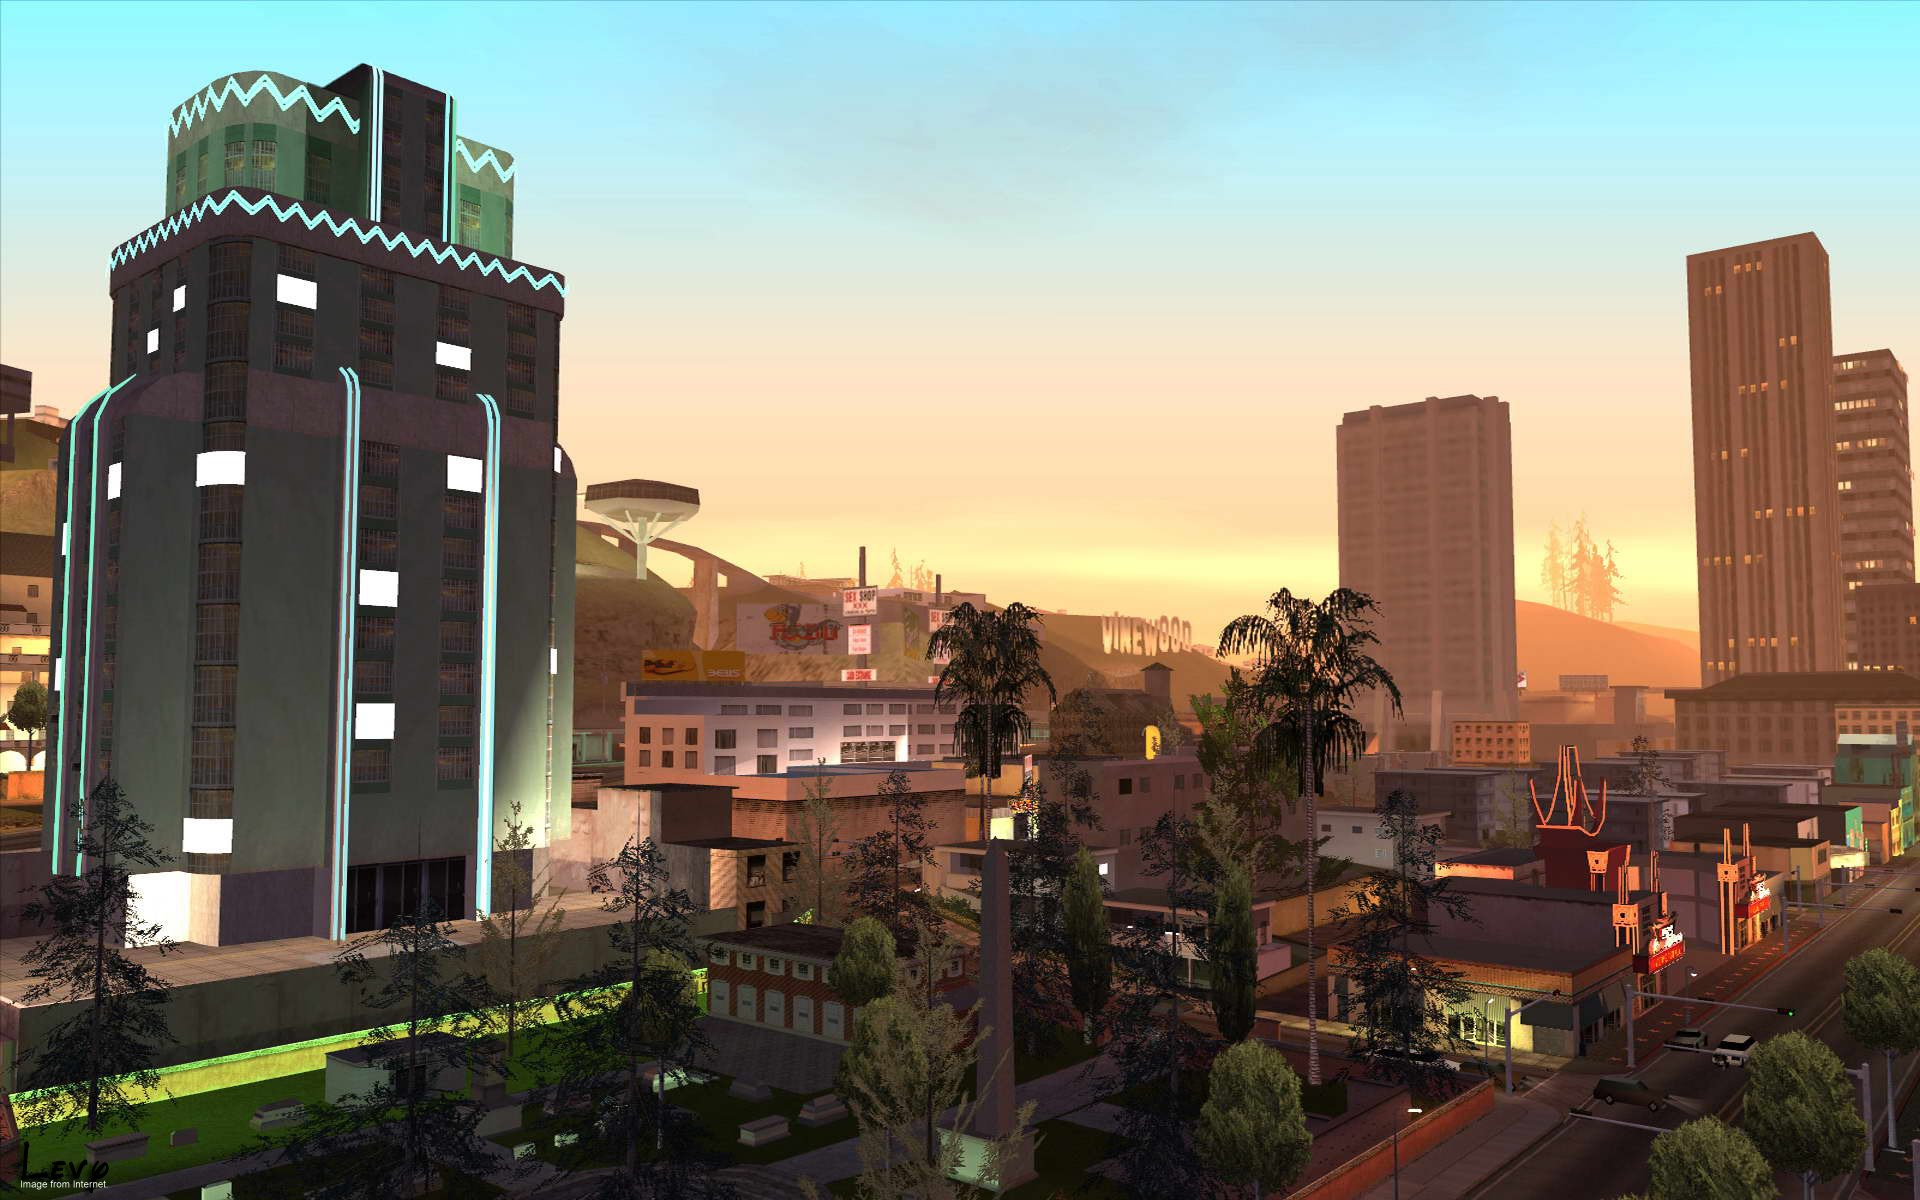 584 Grand Theft Auto Hd Wallpapers Background Images Wallpaper